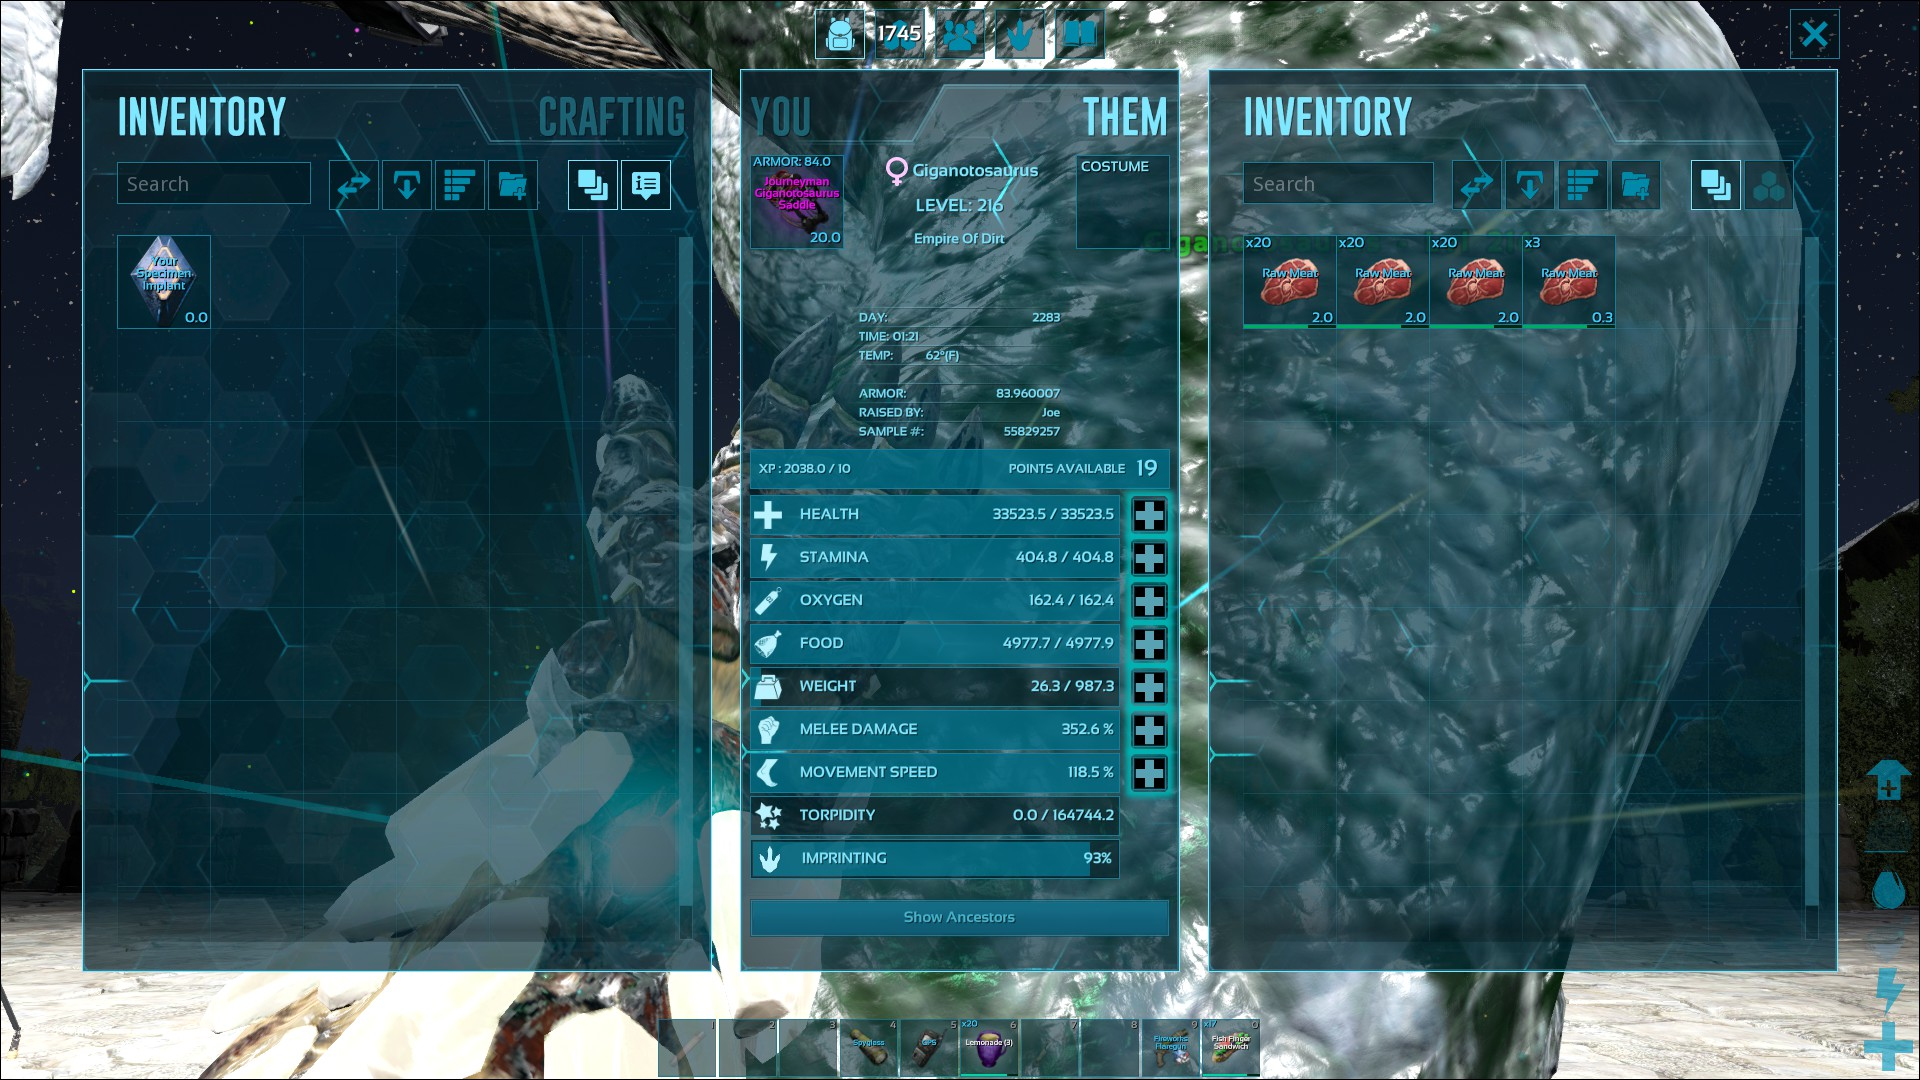 Pc pve trading giga for rex saddle bp arktrading i have a full grown giga female 285 base damage with 93 imprint im looking for a mc rex saddle bp 80 armor or more malvernweather Images